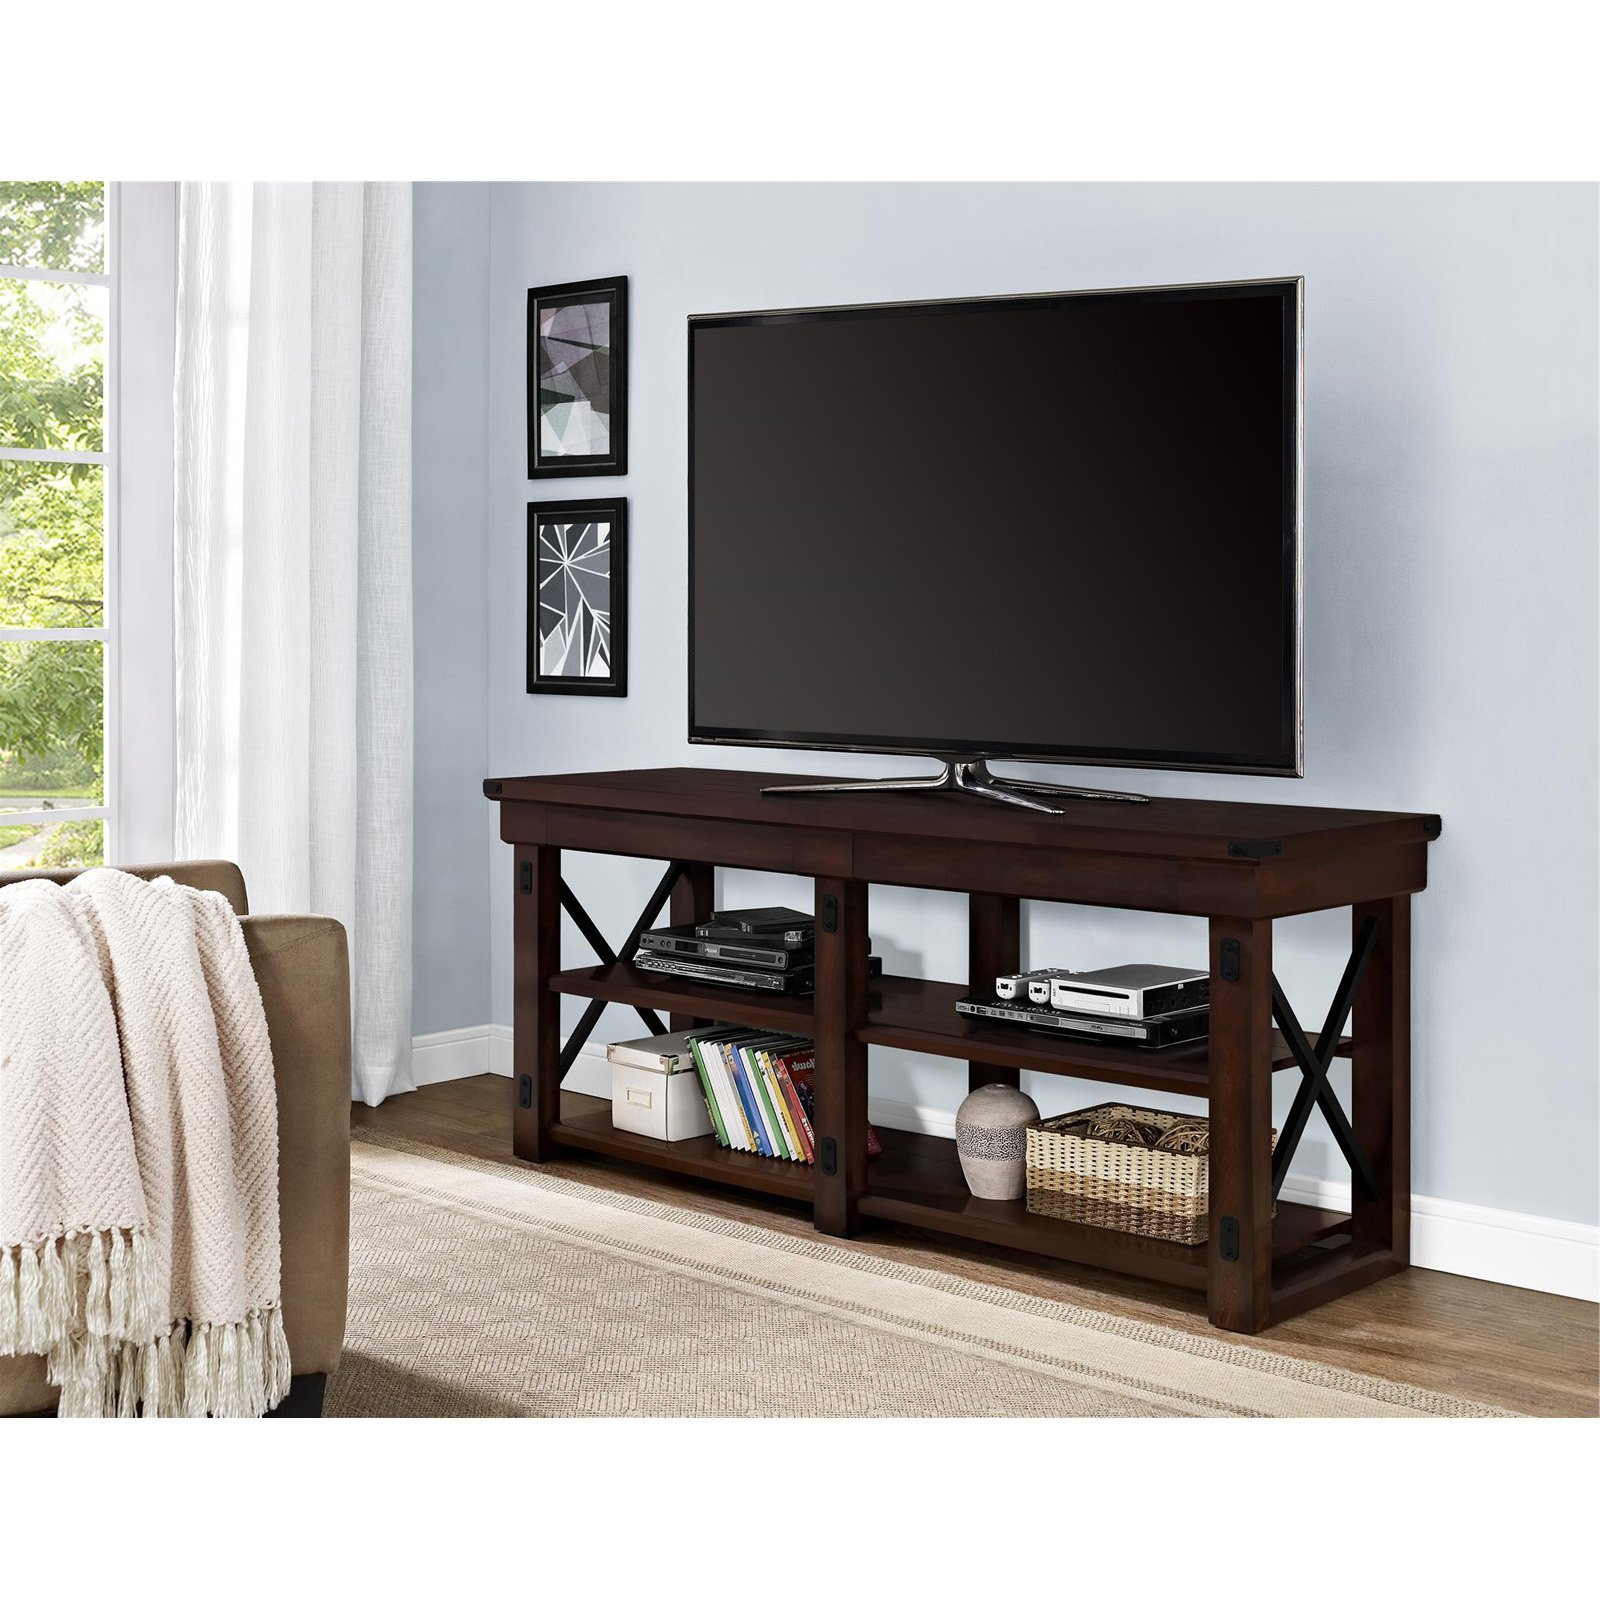 """Ameriwood Home Wildwood Tv Stand For Tvs Up To 65 Regarding Calea Tv Stands For Tvs Up To 65"""" (View 4 of 20)"""